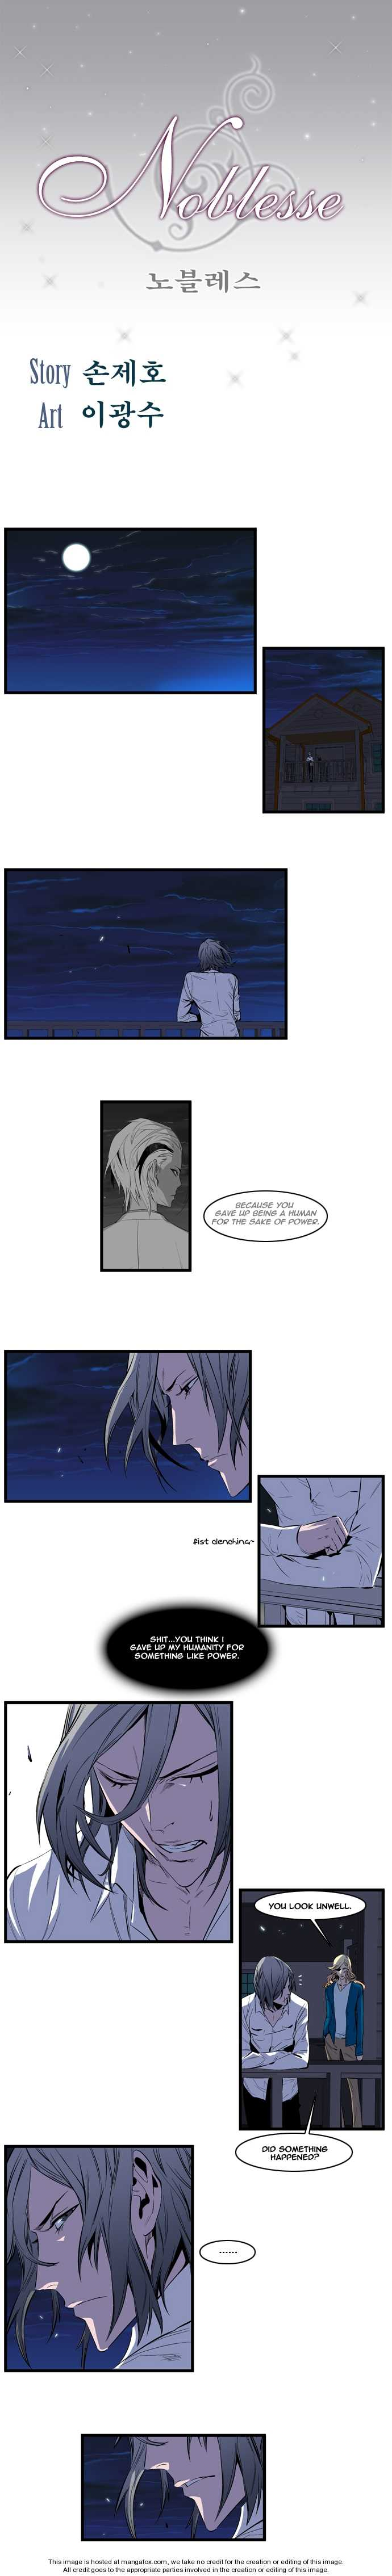 Noblesse 104 Page 1